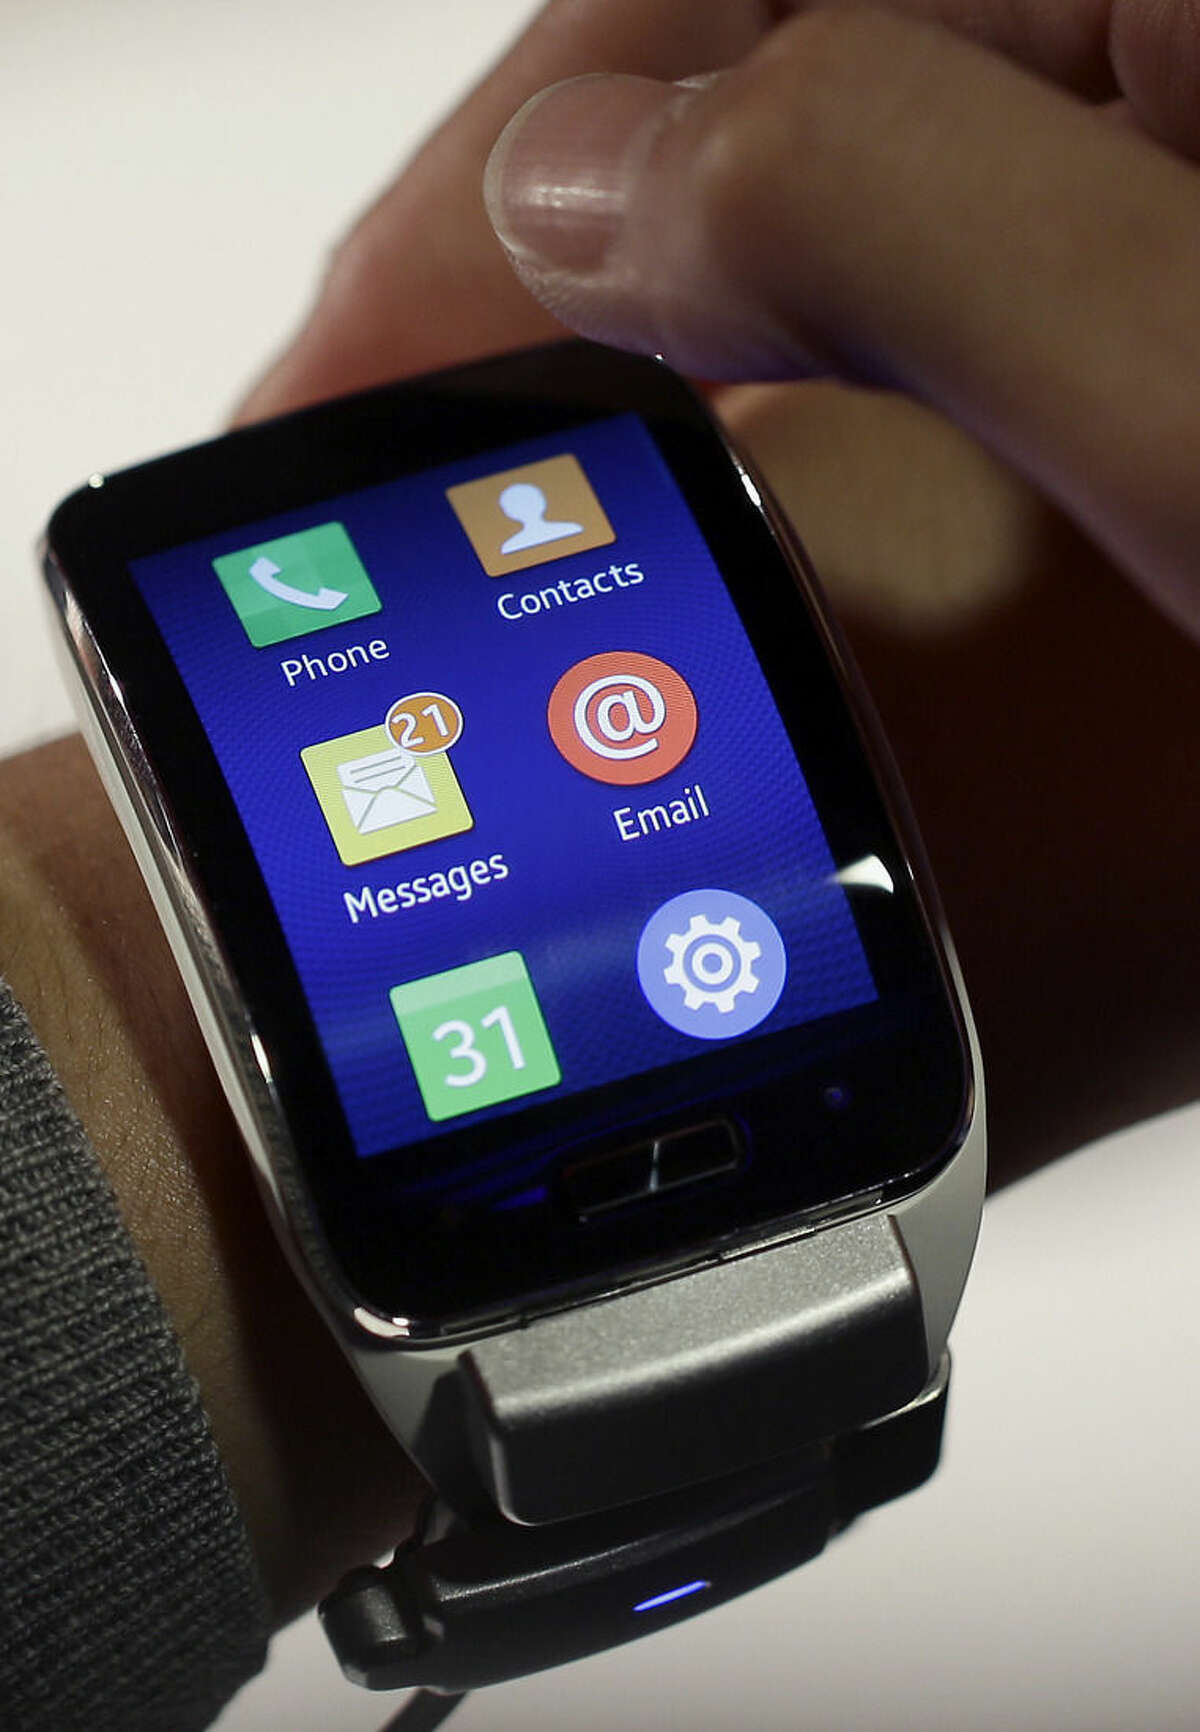 FILE - In this Sept. 3, 2014 file photo, a visitor tabs on the display of a Samsung Gear S smartwatch at the IFA, one of the world's largest trade fairs for consumer electronics and electrical home appliances, in Berlin. Samsung's latest smartwatch has a slick user interface and a vivid, curved screen. (AP Photo/Michael Sohn, File)